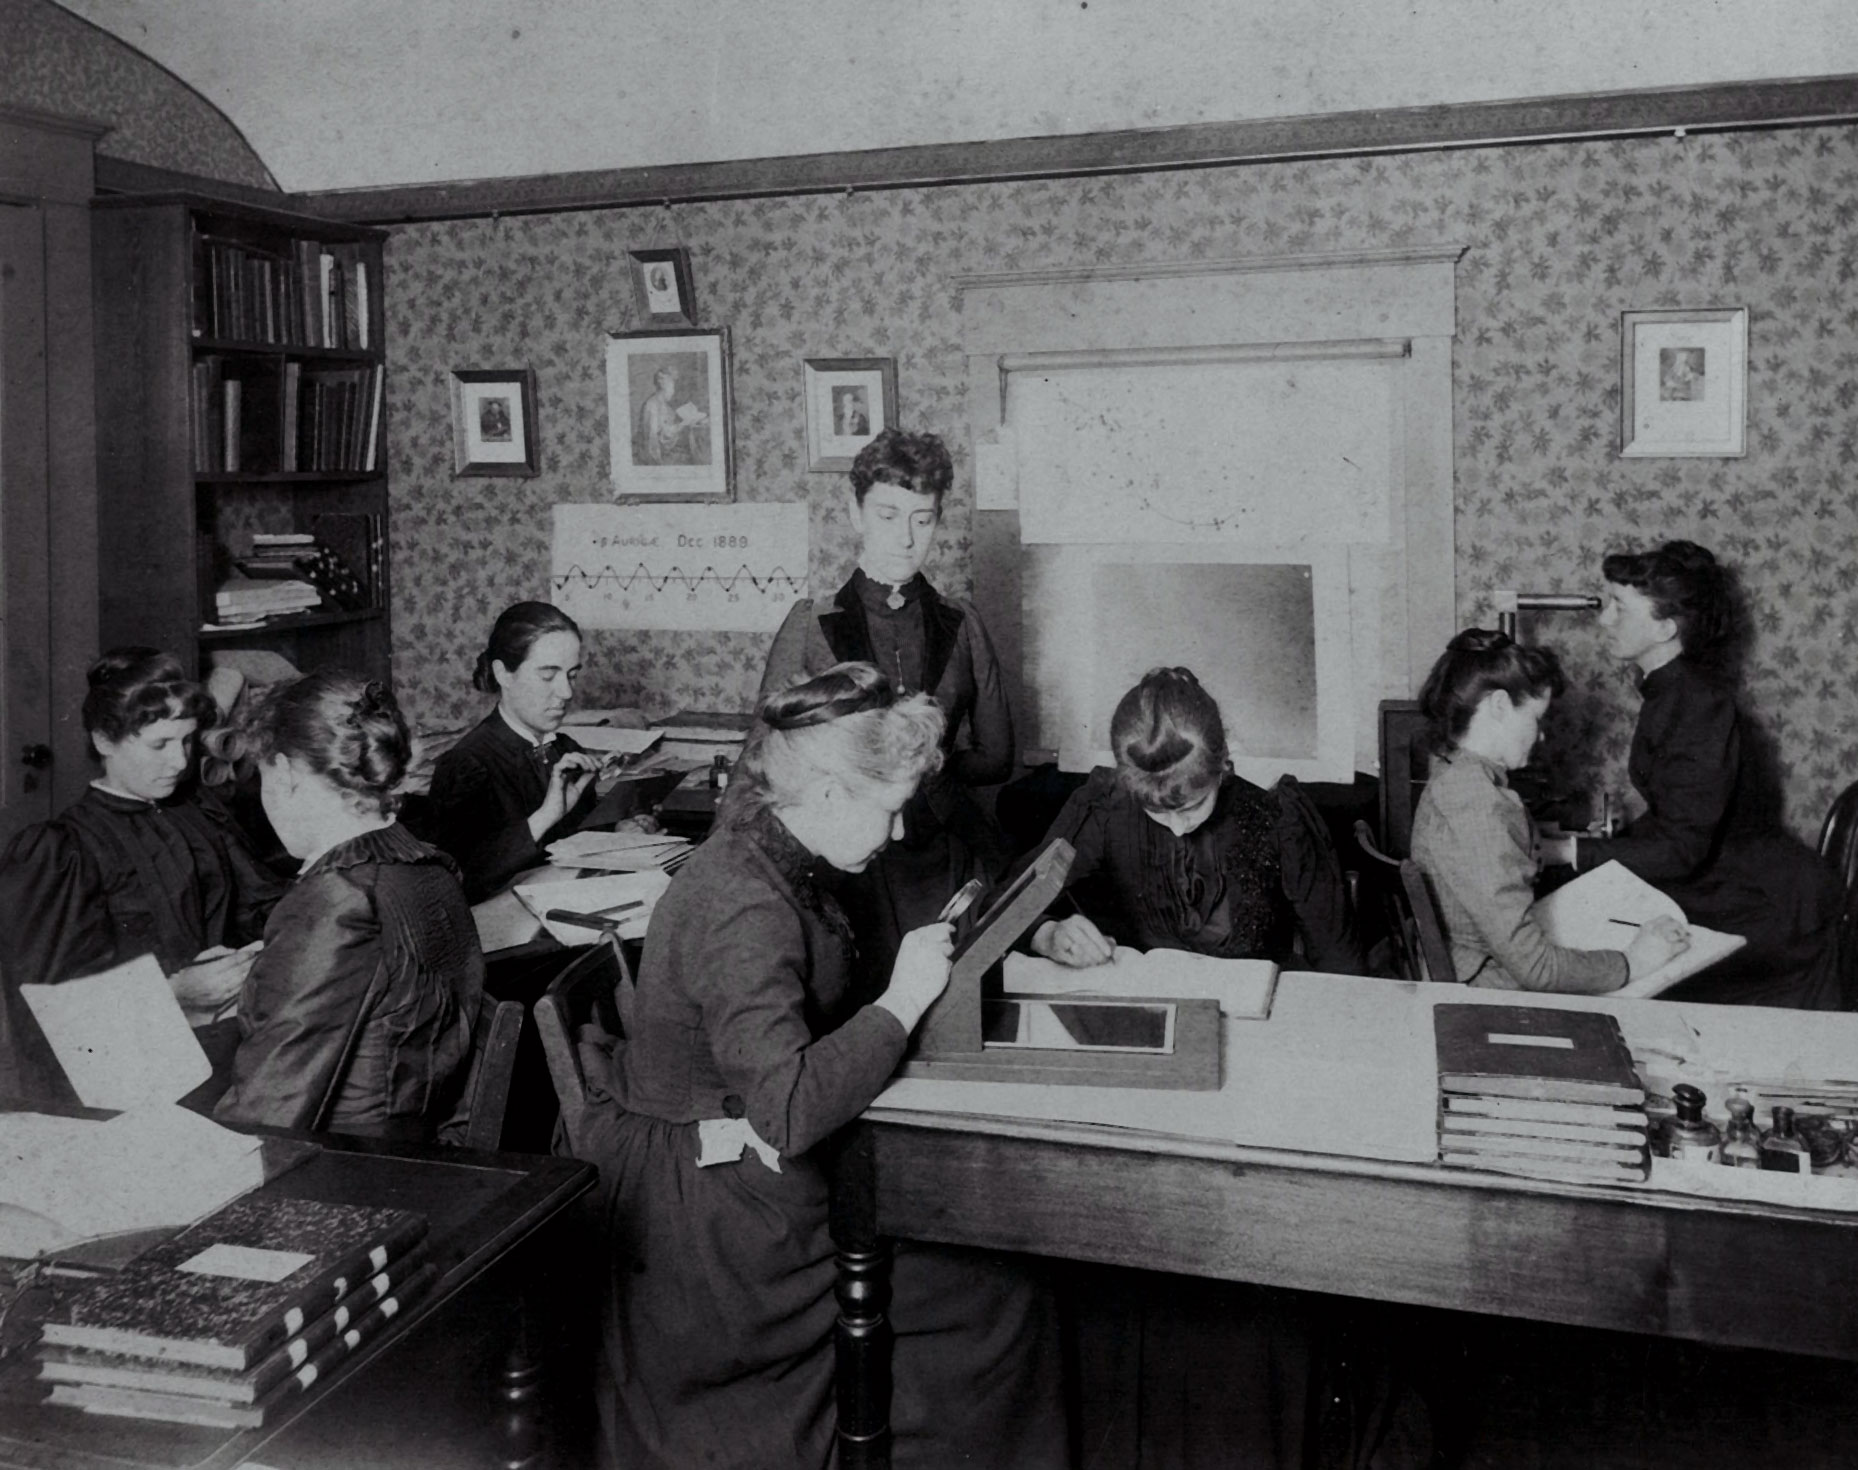 A group of women are sitting in a tiny room, some holding magnifying glasses, bent over boxes studying the glass plates. One stands in the center of the room, overseeing them. This is Williamina Fleming.